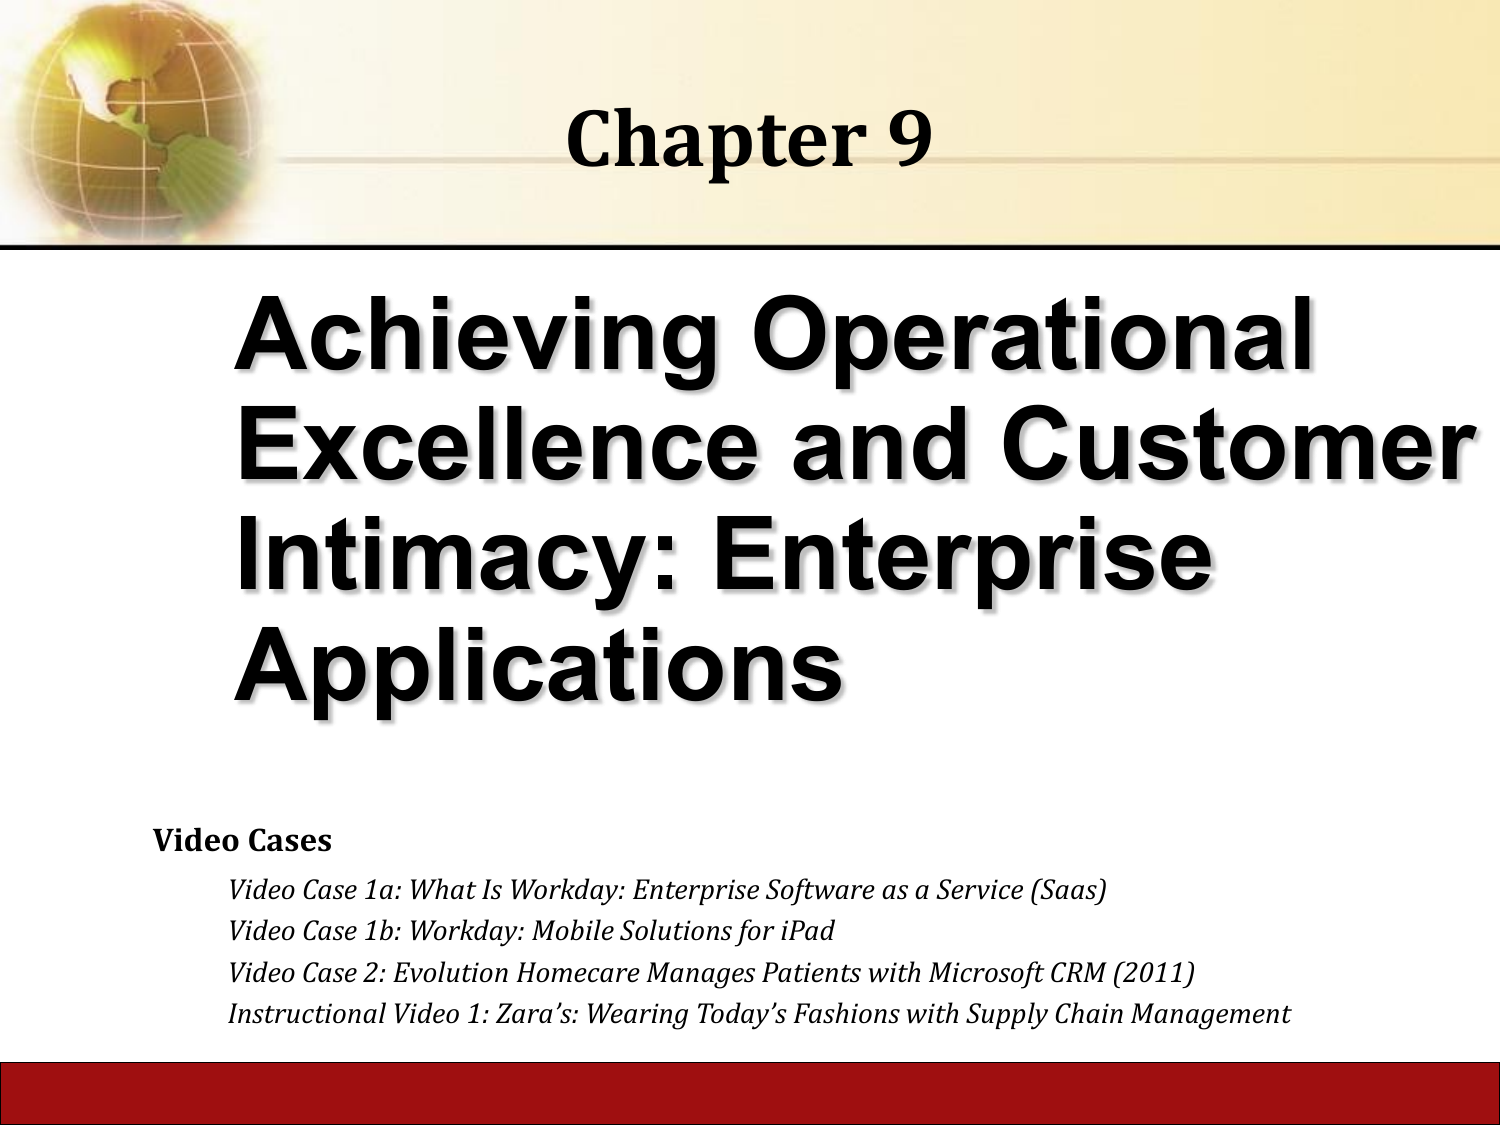 how do enterprise systems help businesses achieve operational excellence?